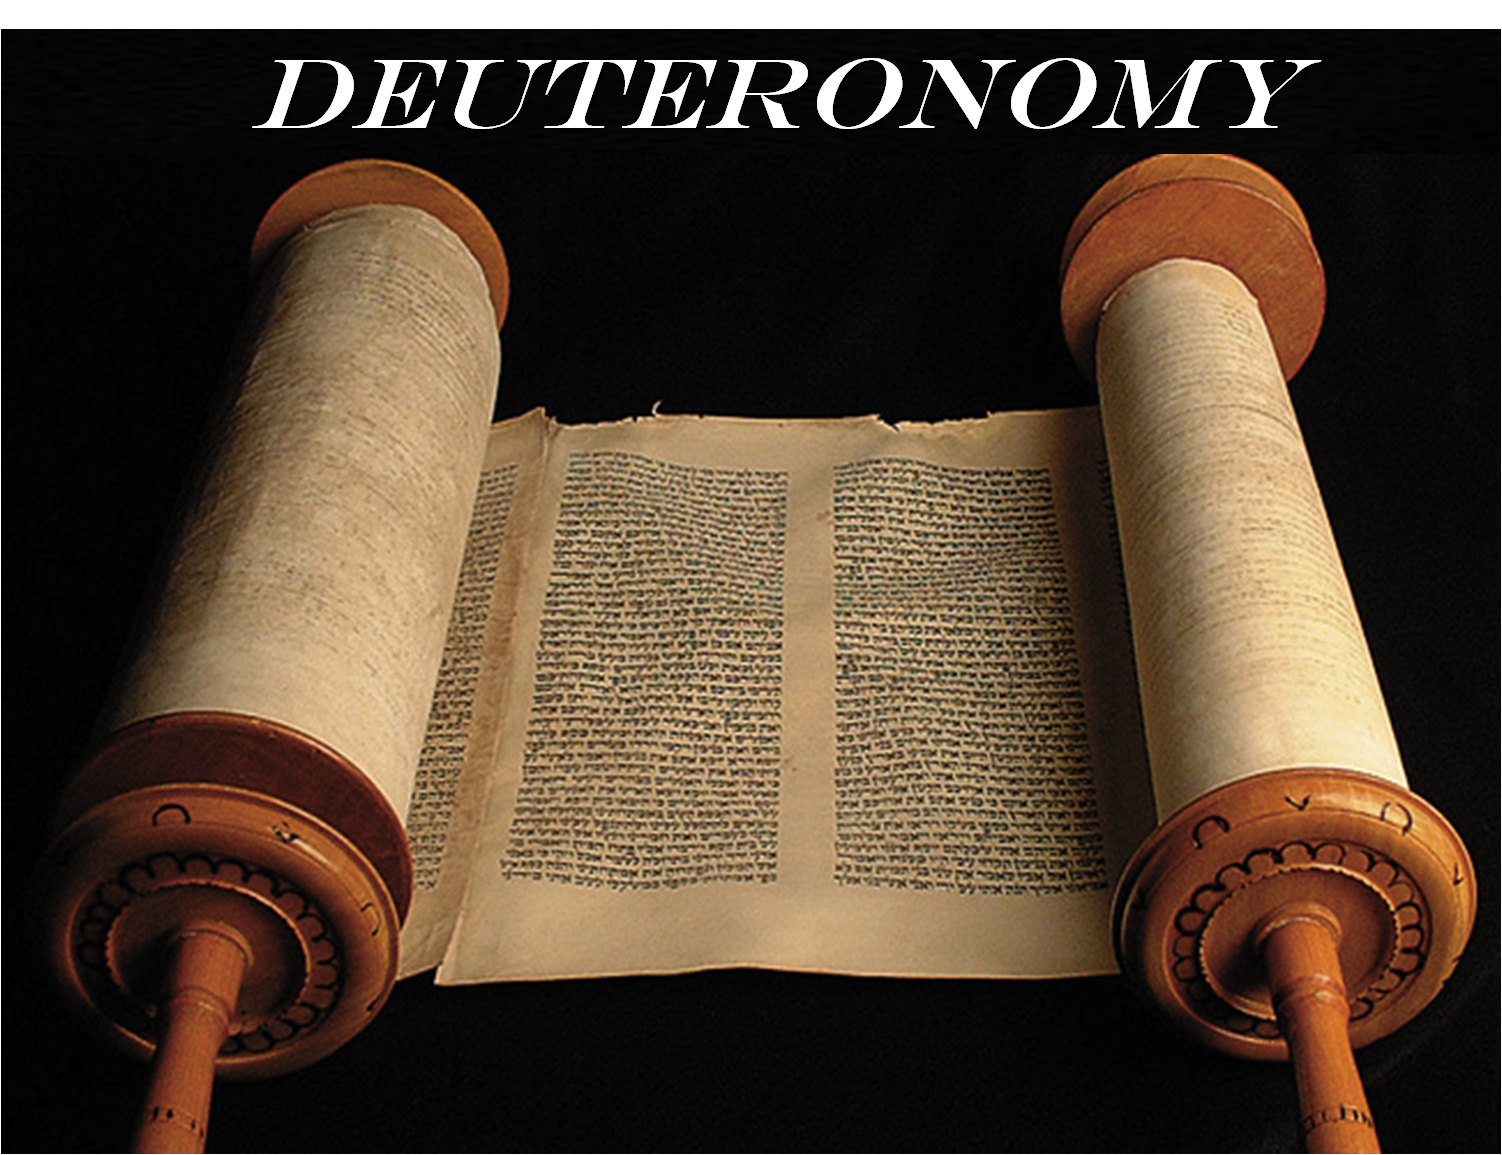 an analysis of the book of deuteronomy as the fifth book of the bible Summary of the book of deuteronomy deuteronomy is a book containing four sermons that moses gave to the people before entering the promised land the events of the book took place over very few days prior to his death and the entering in to the land of canaan.